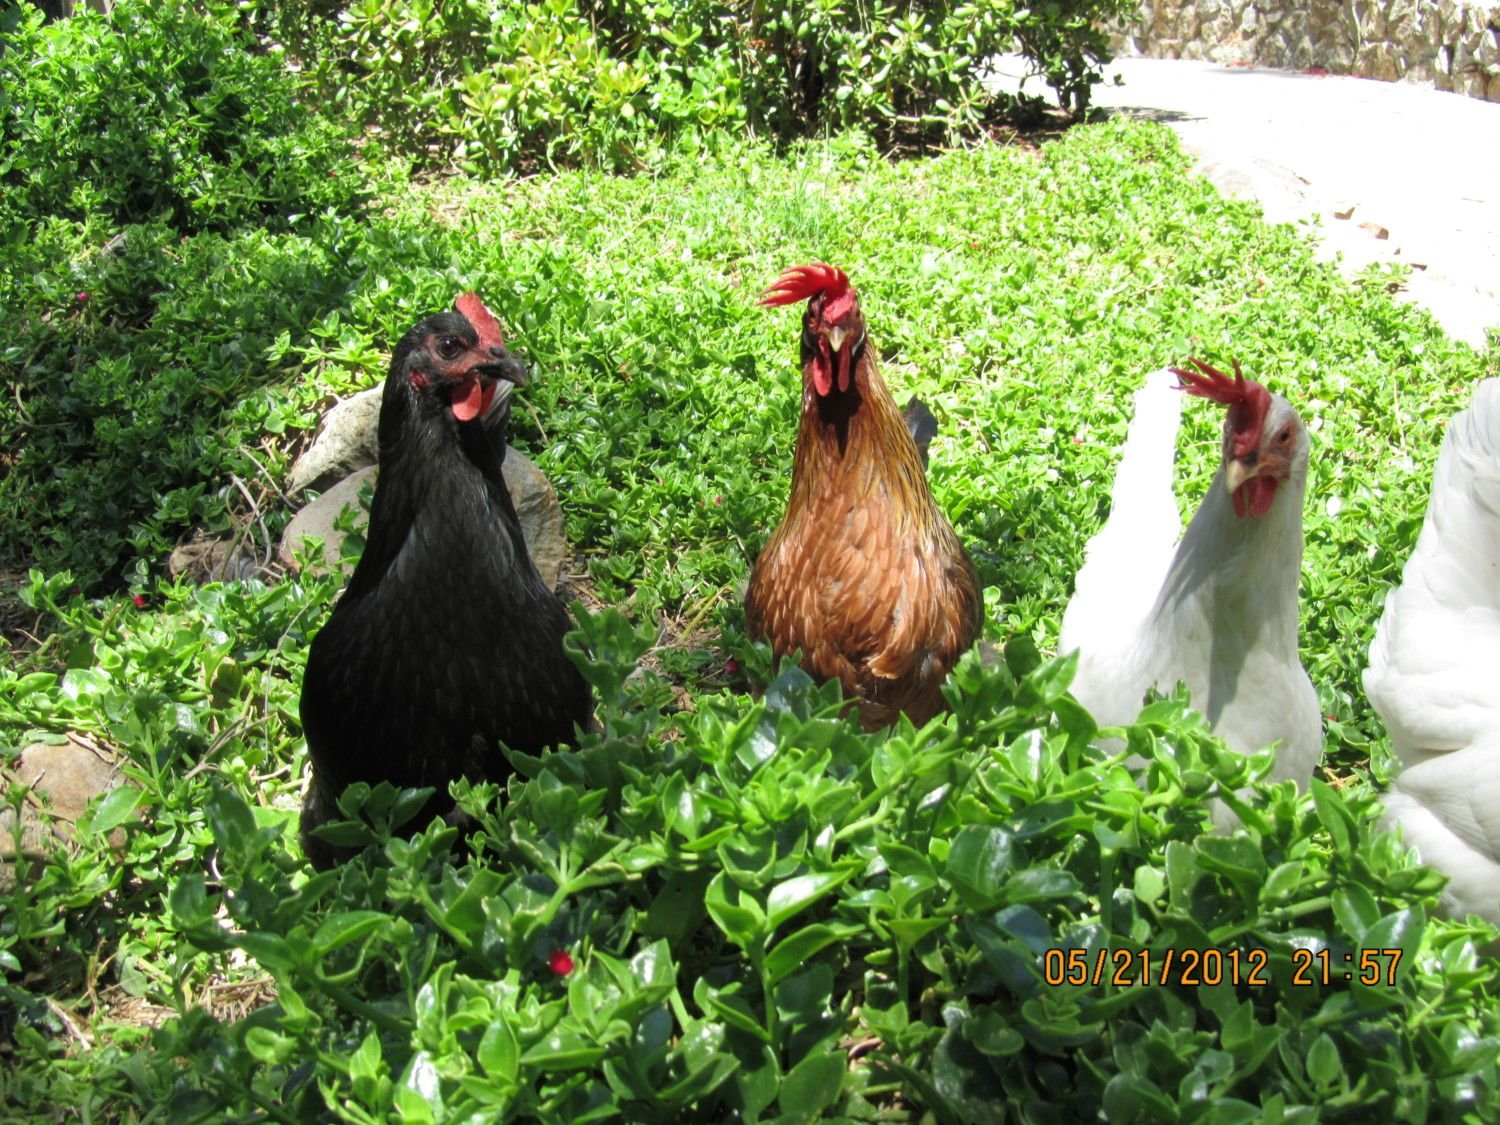 gander111's photos in Your Chicken Pictures Needed For The BYC 2013 Calendar